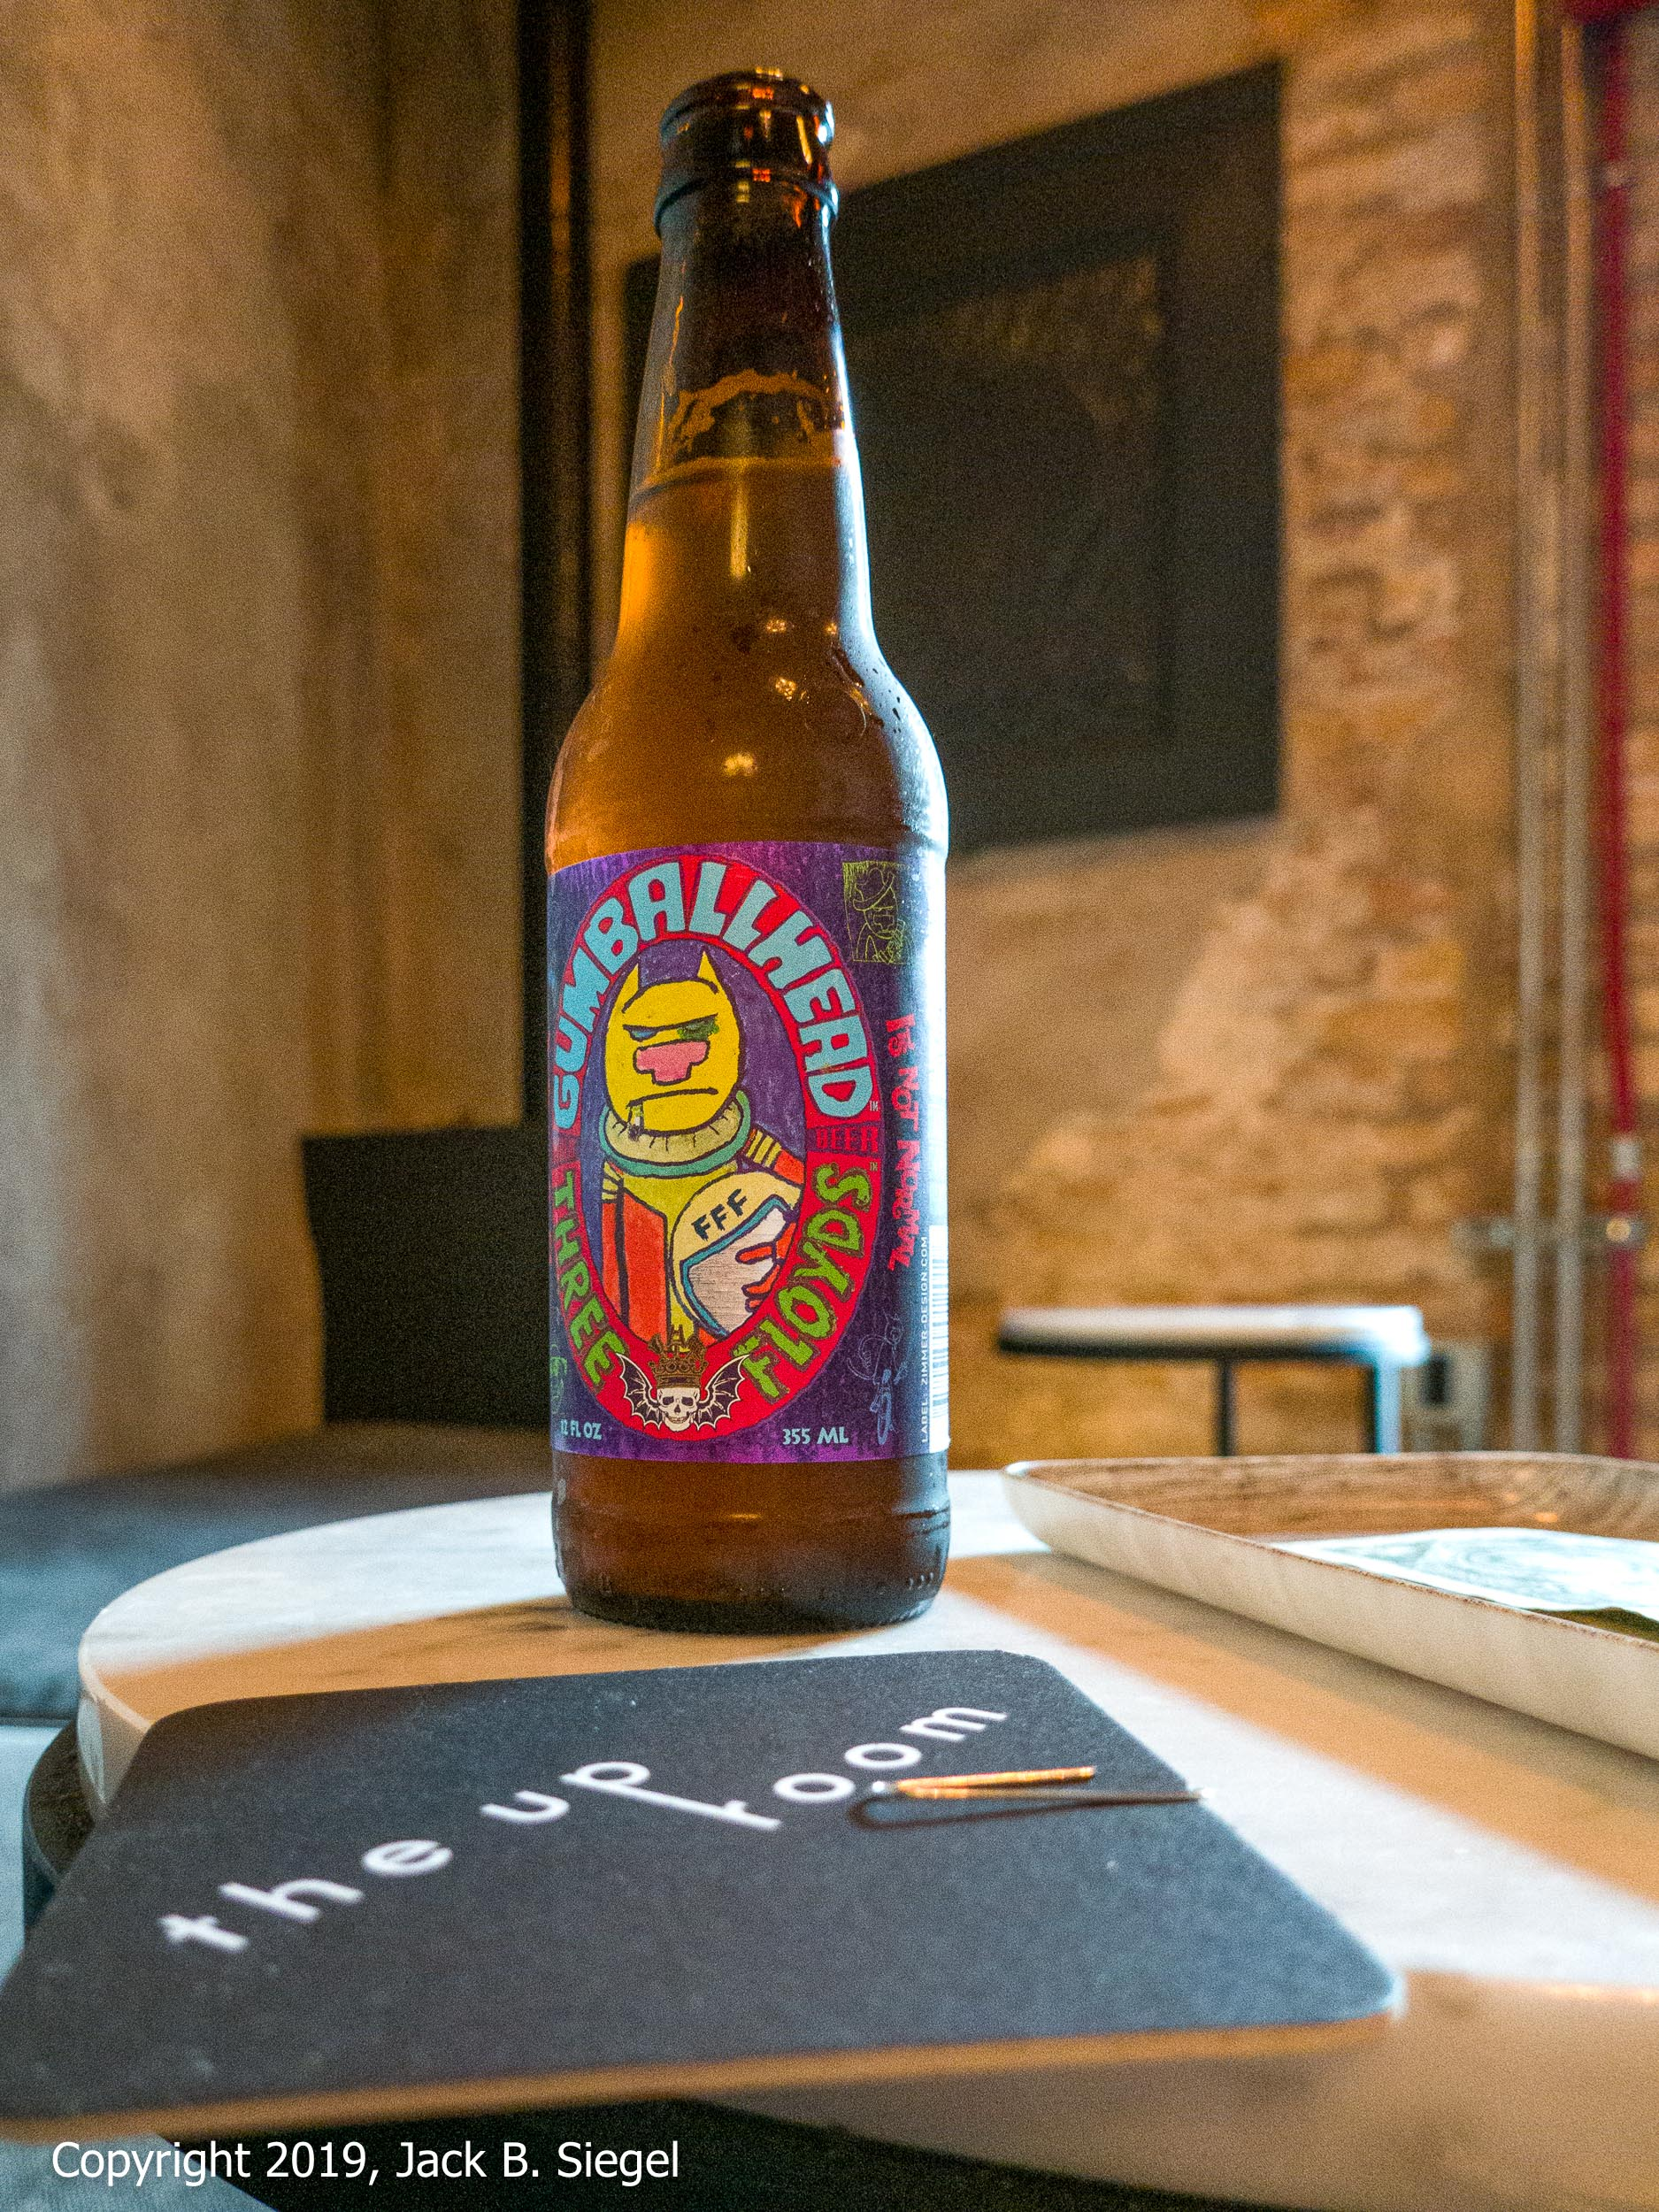 First Beer in Over a Decade—Gumballhead (Wicker Park)